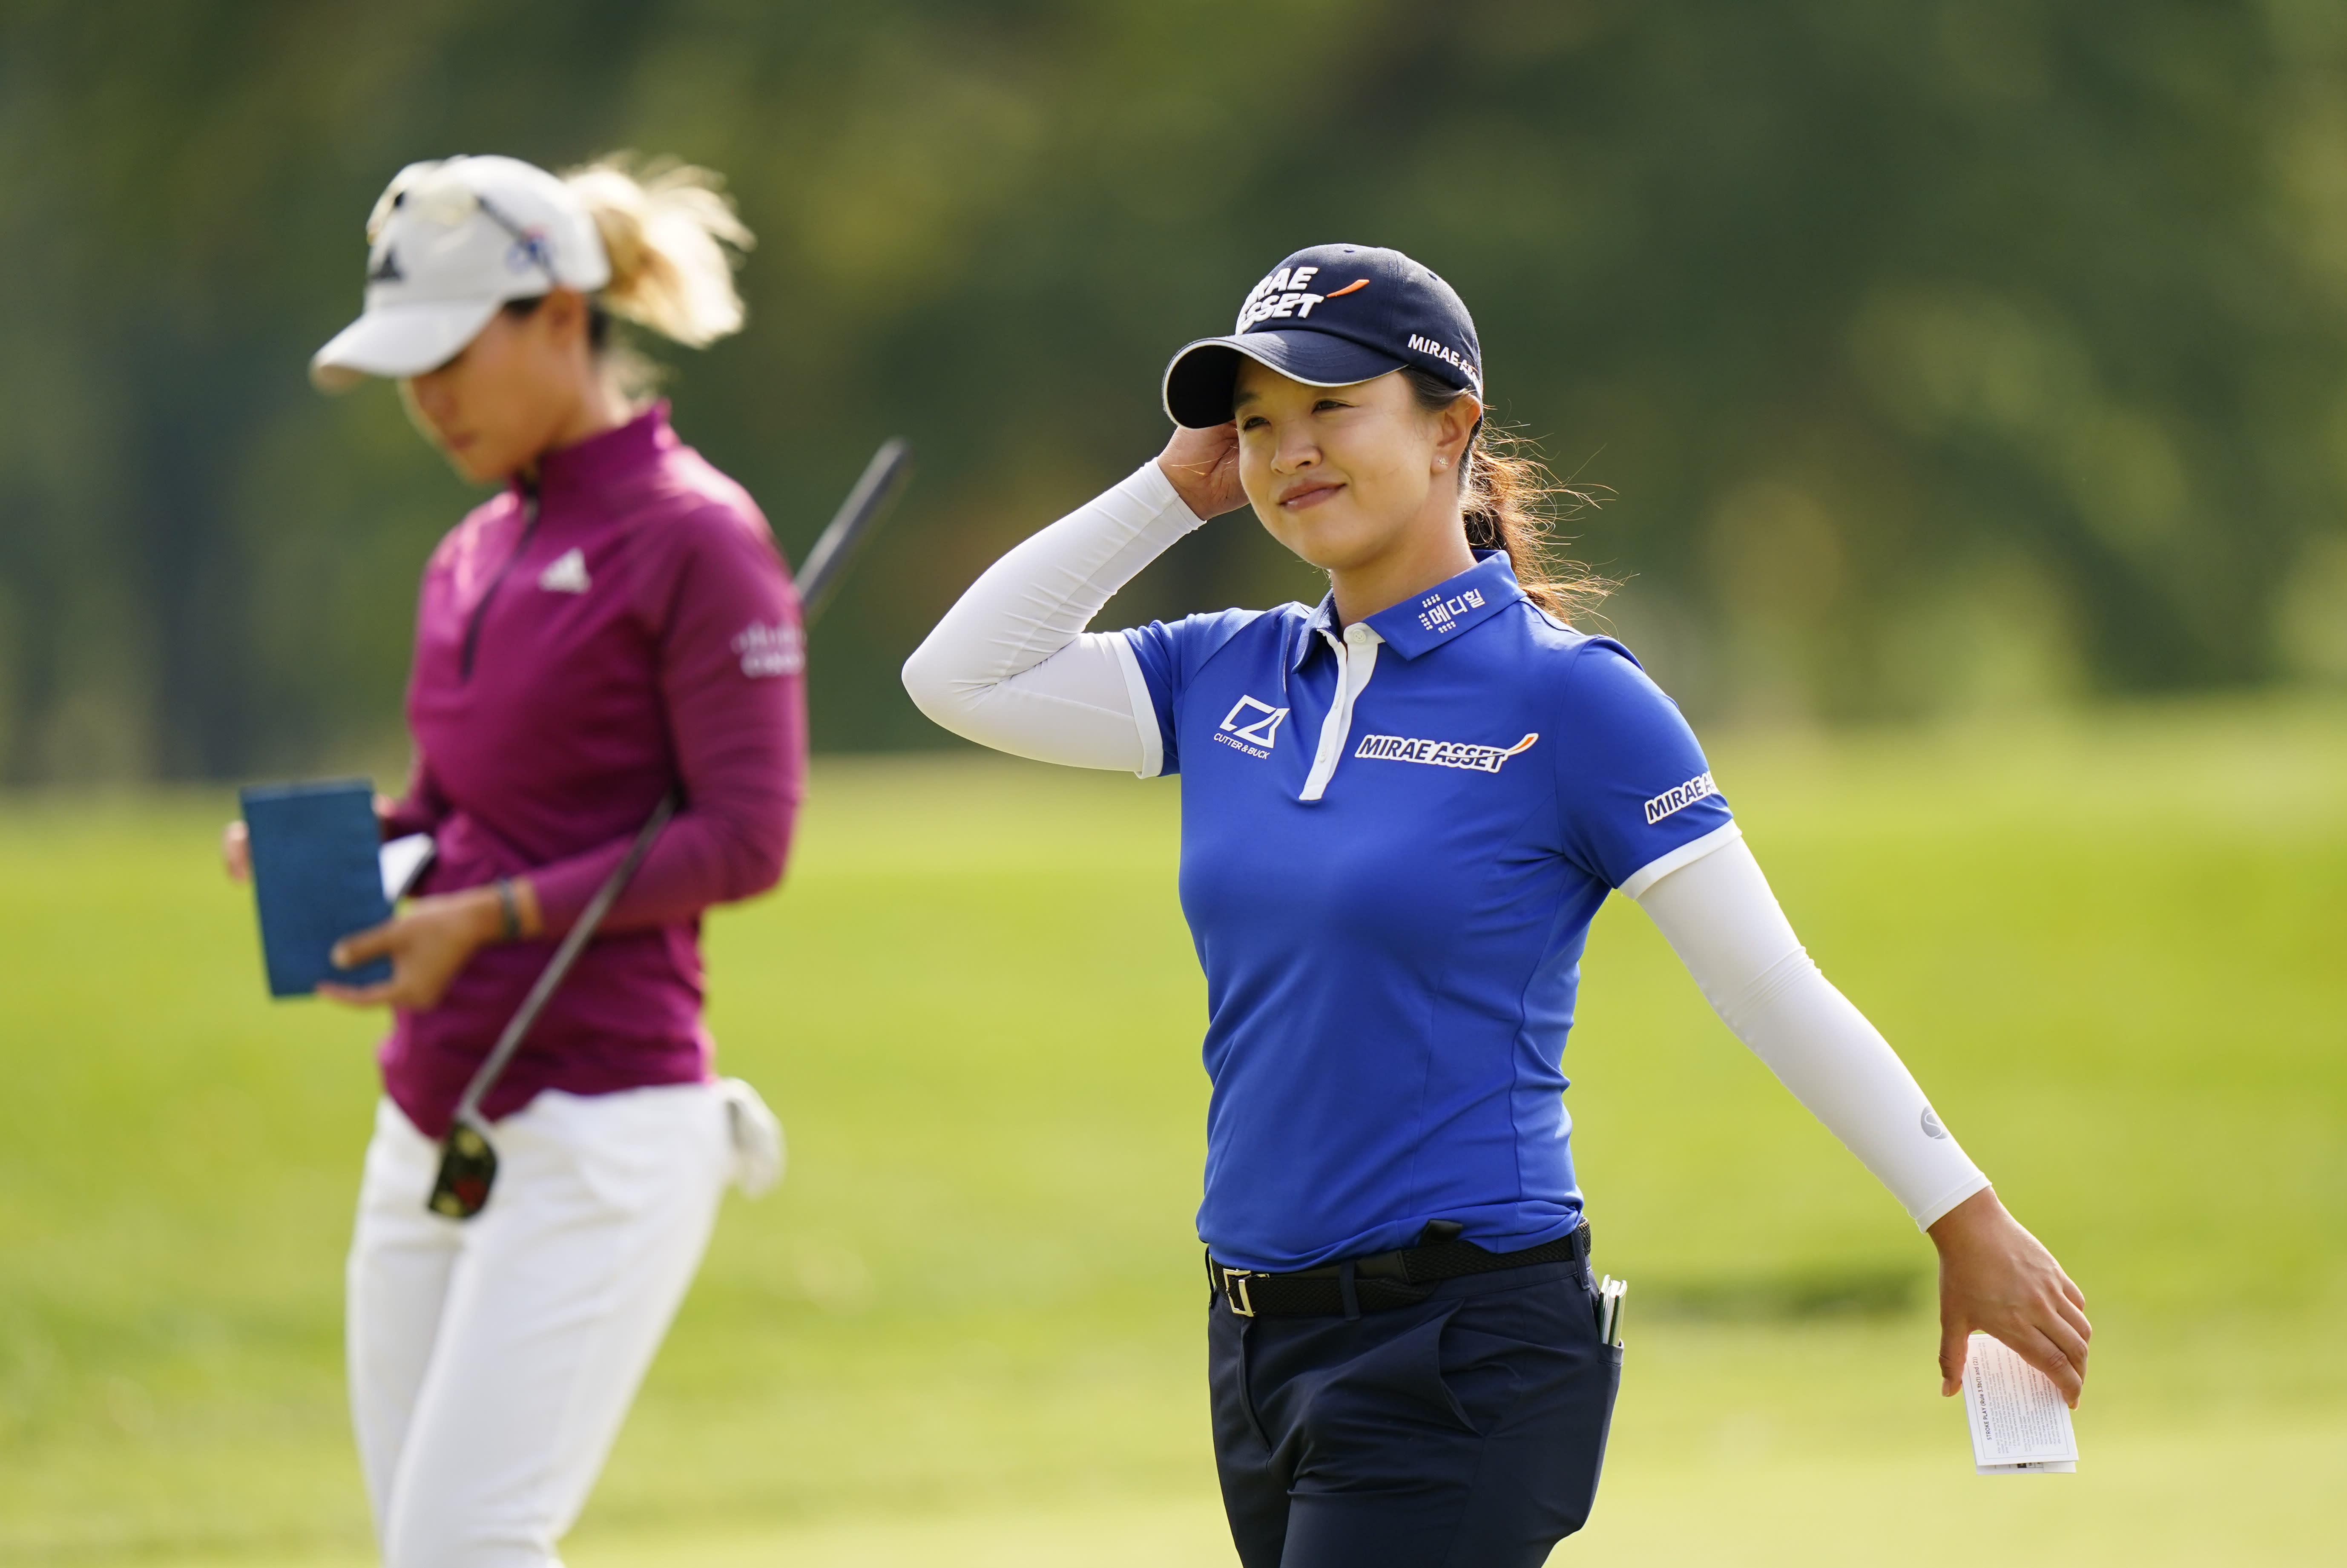 Sei Young Kim, of South Korea, smiles as she walks off the 18th green during the third round at the KPMG Women's PGA Championship golf tournament at the Aronimink Golf Club, Saturday, Oct. 10, 2020, in Newtown Square, Pa. (AP Photo/Matt Slocum)